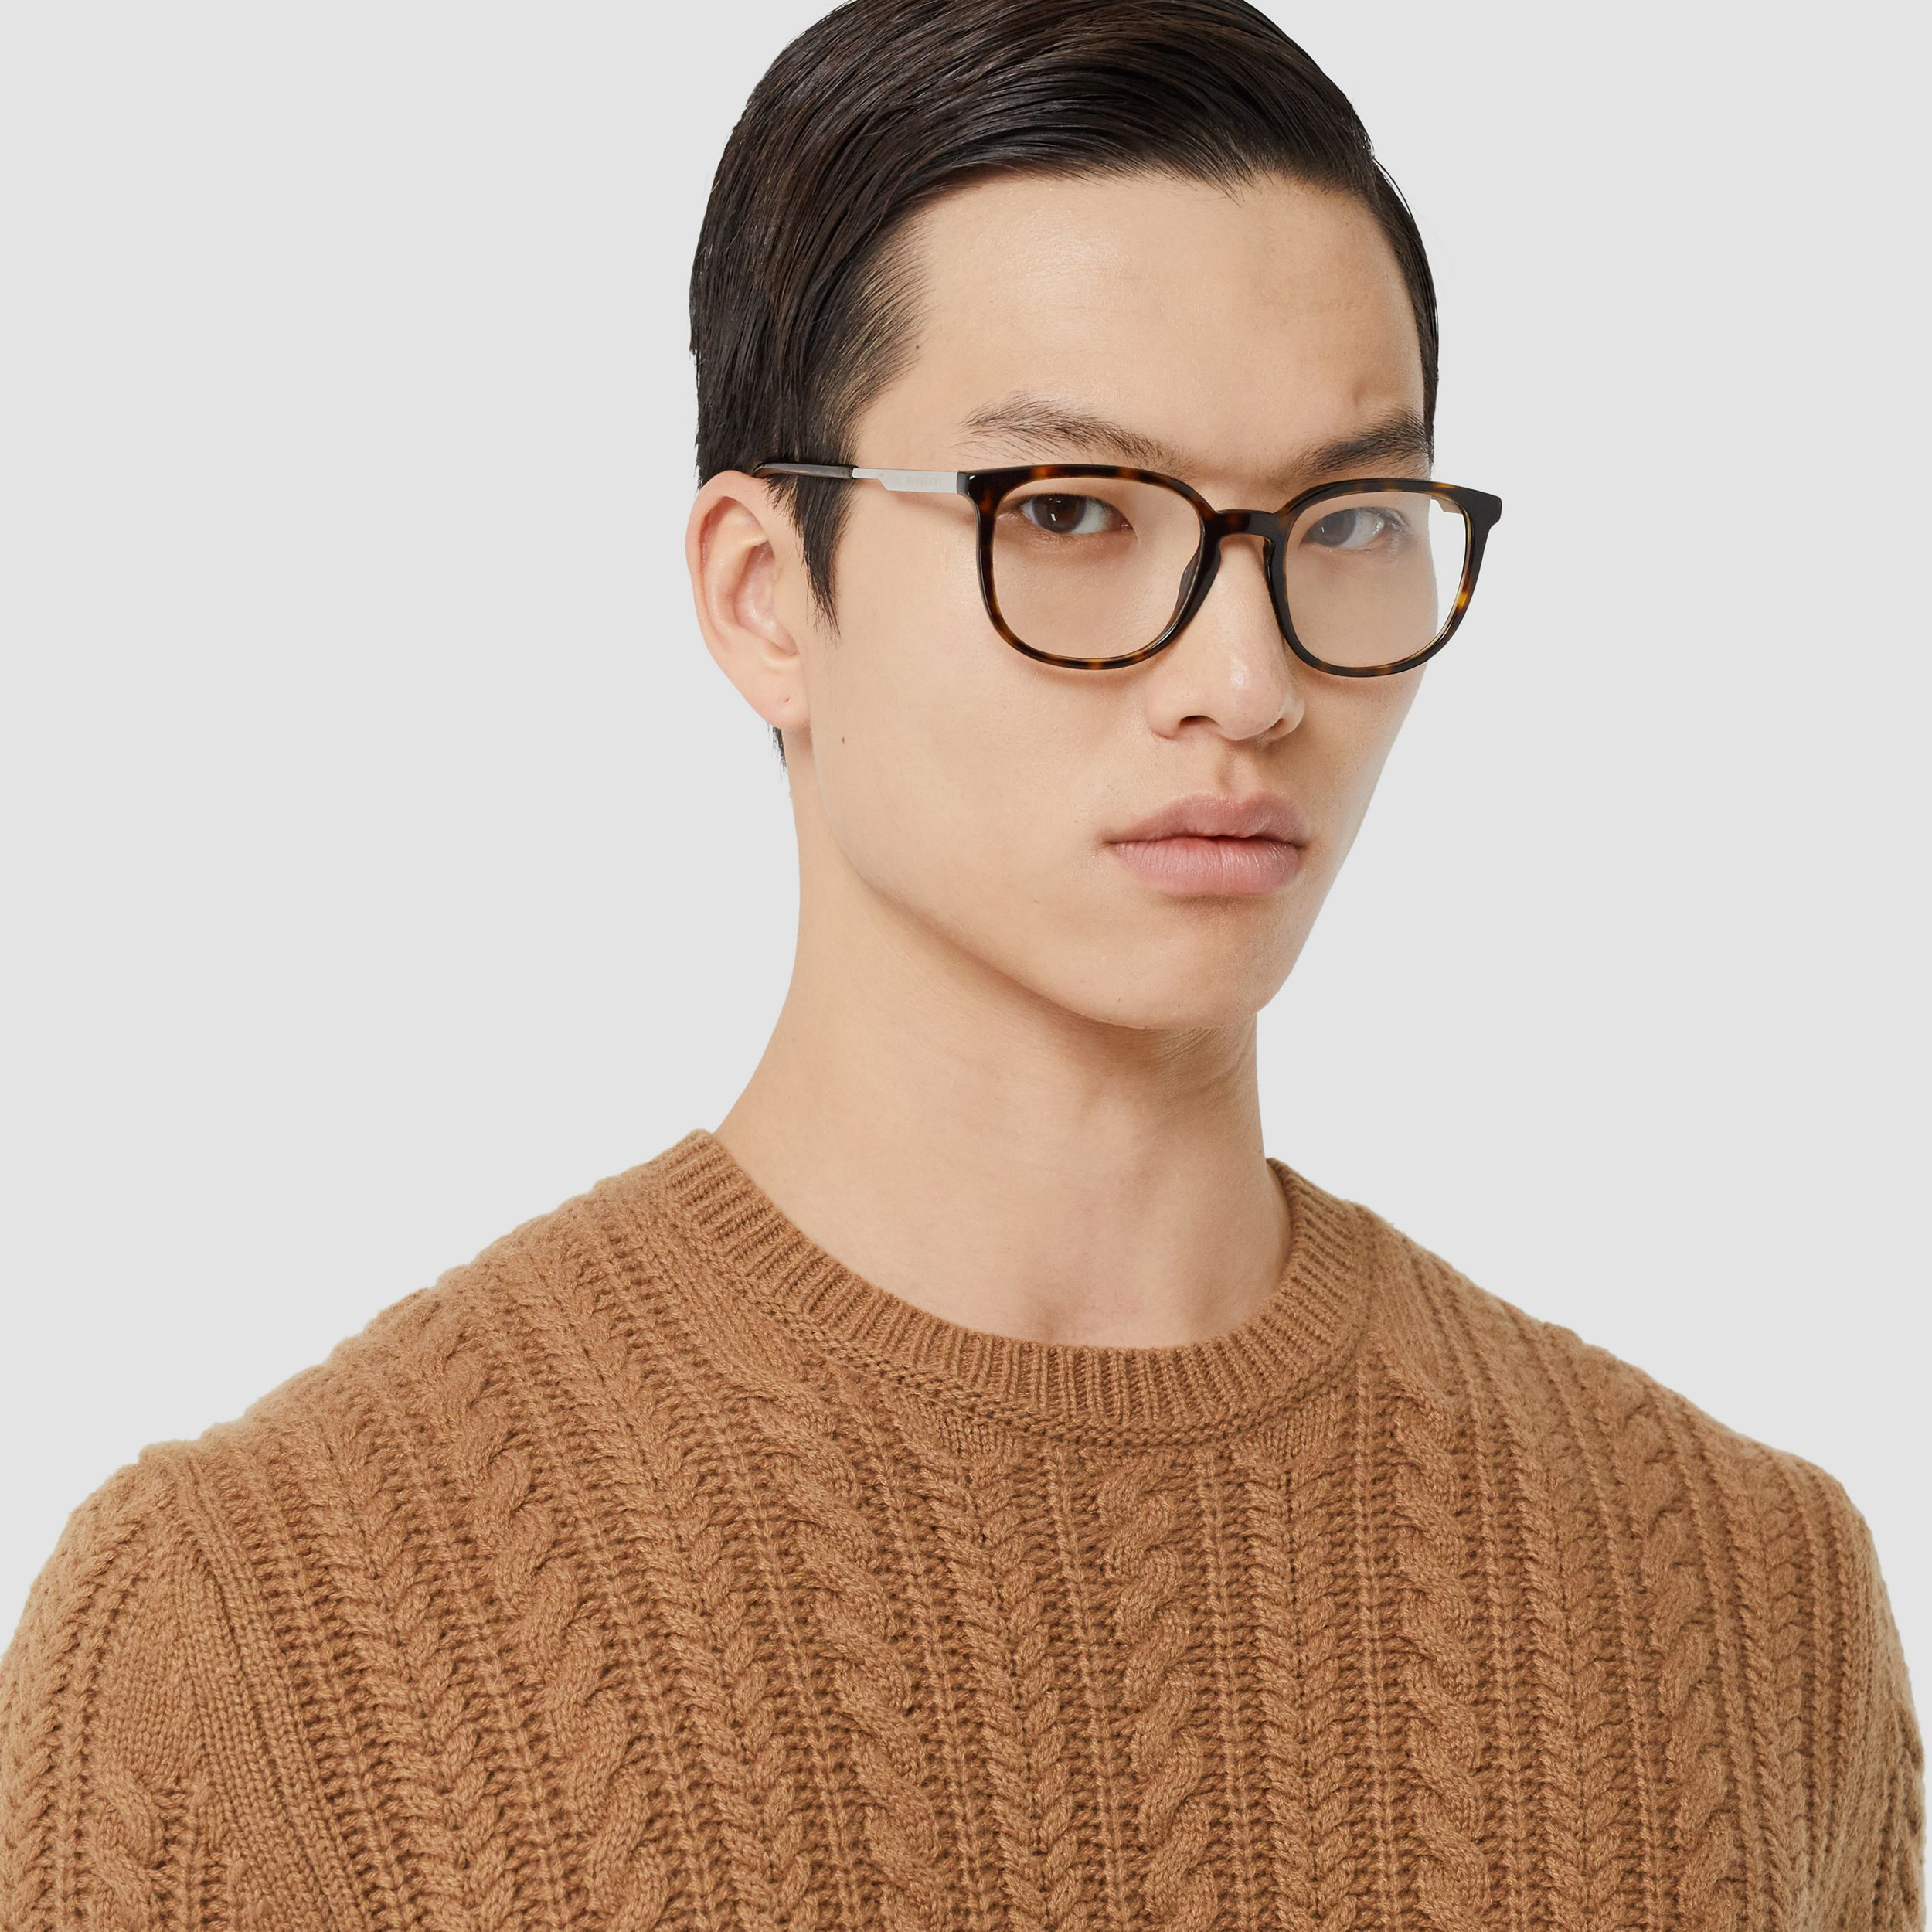 Cable Knit Cashmere Sweater in Maple - Men | Burberry - 2